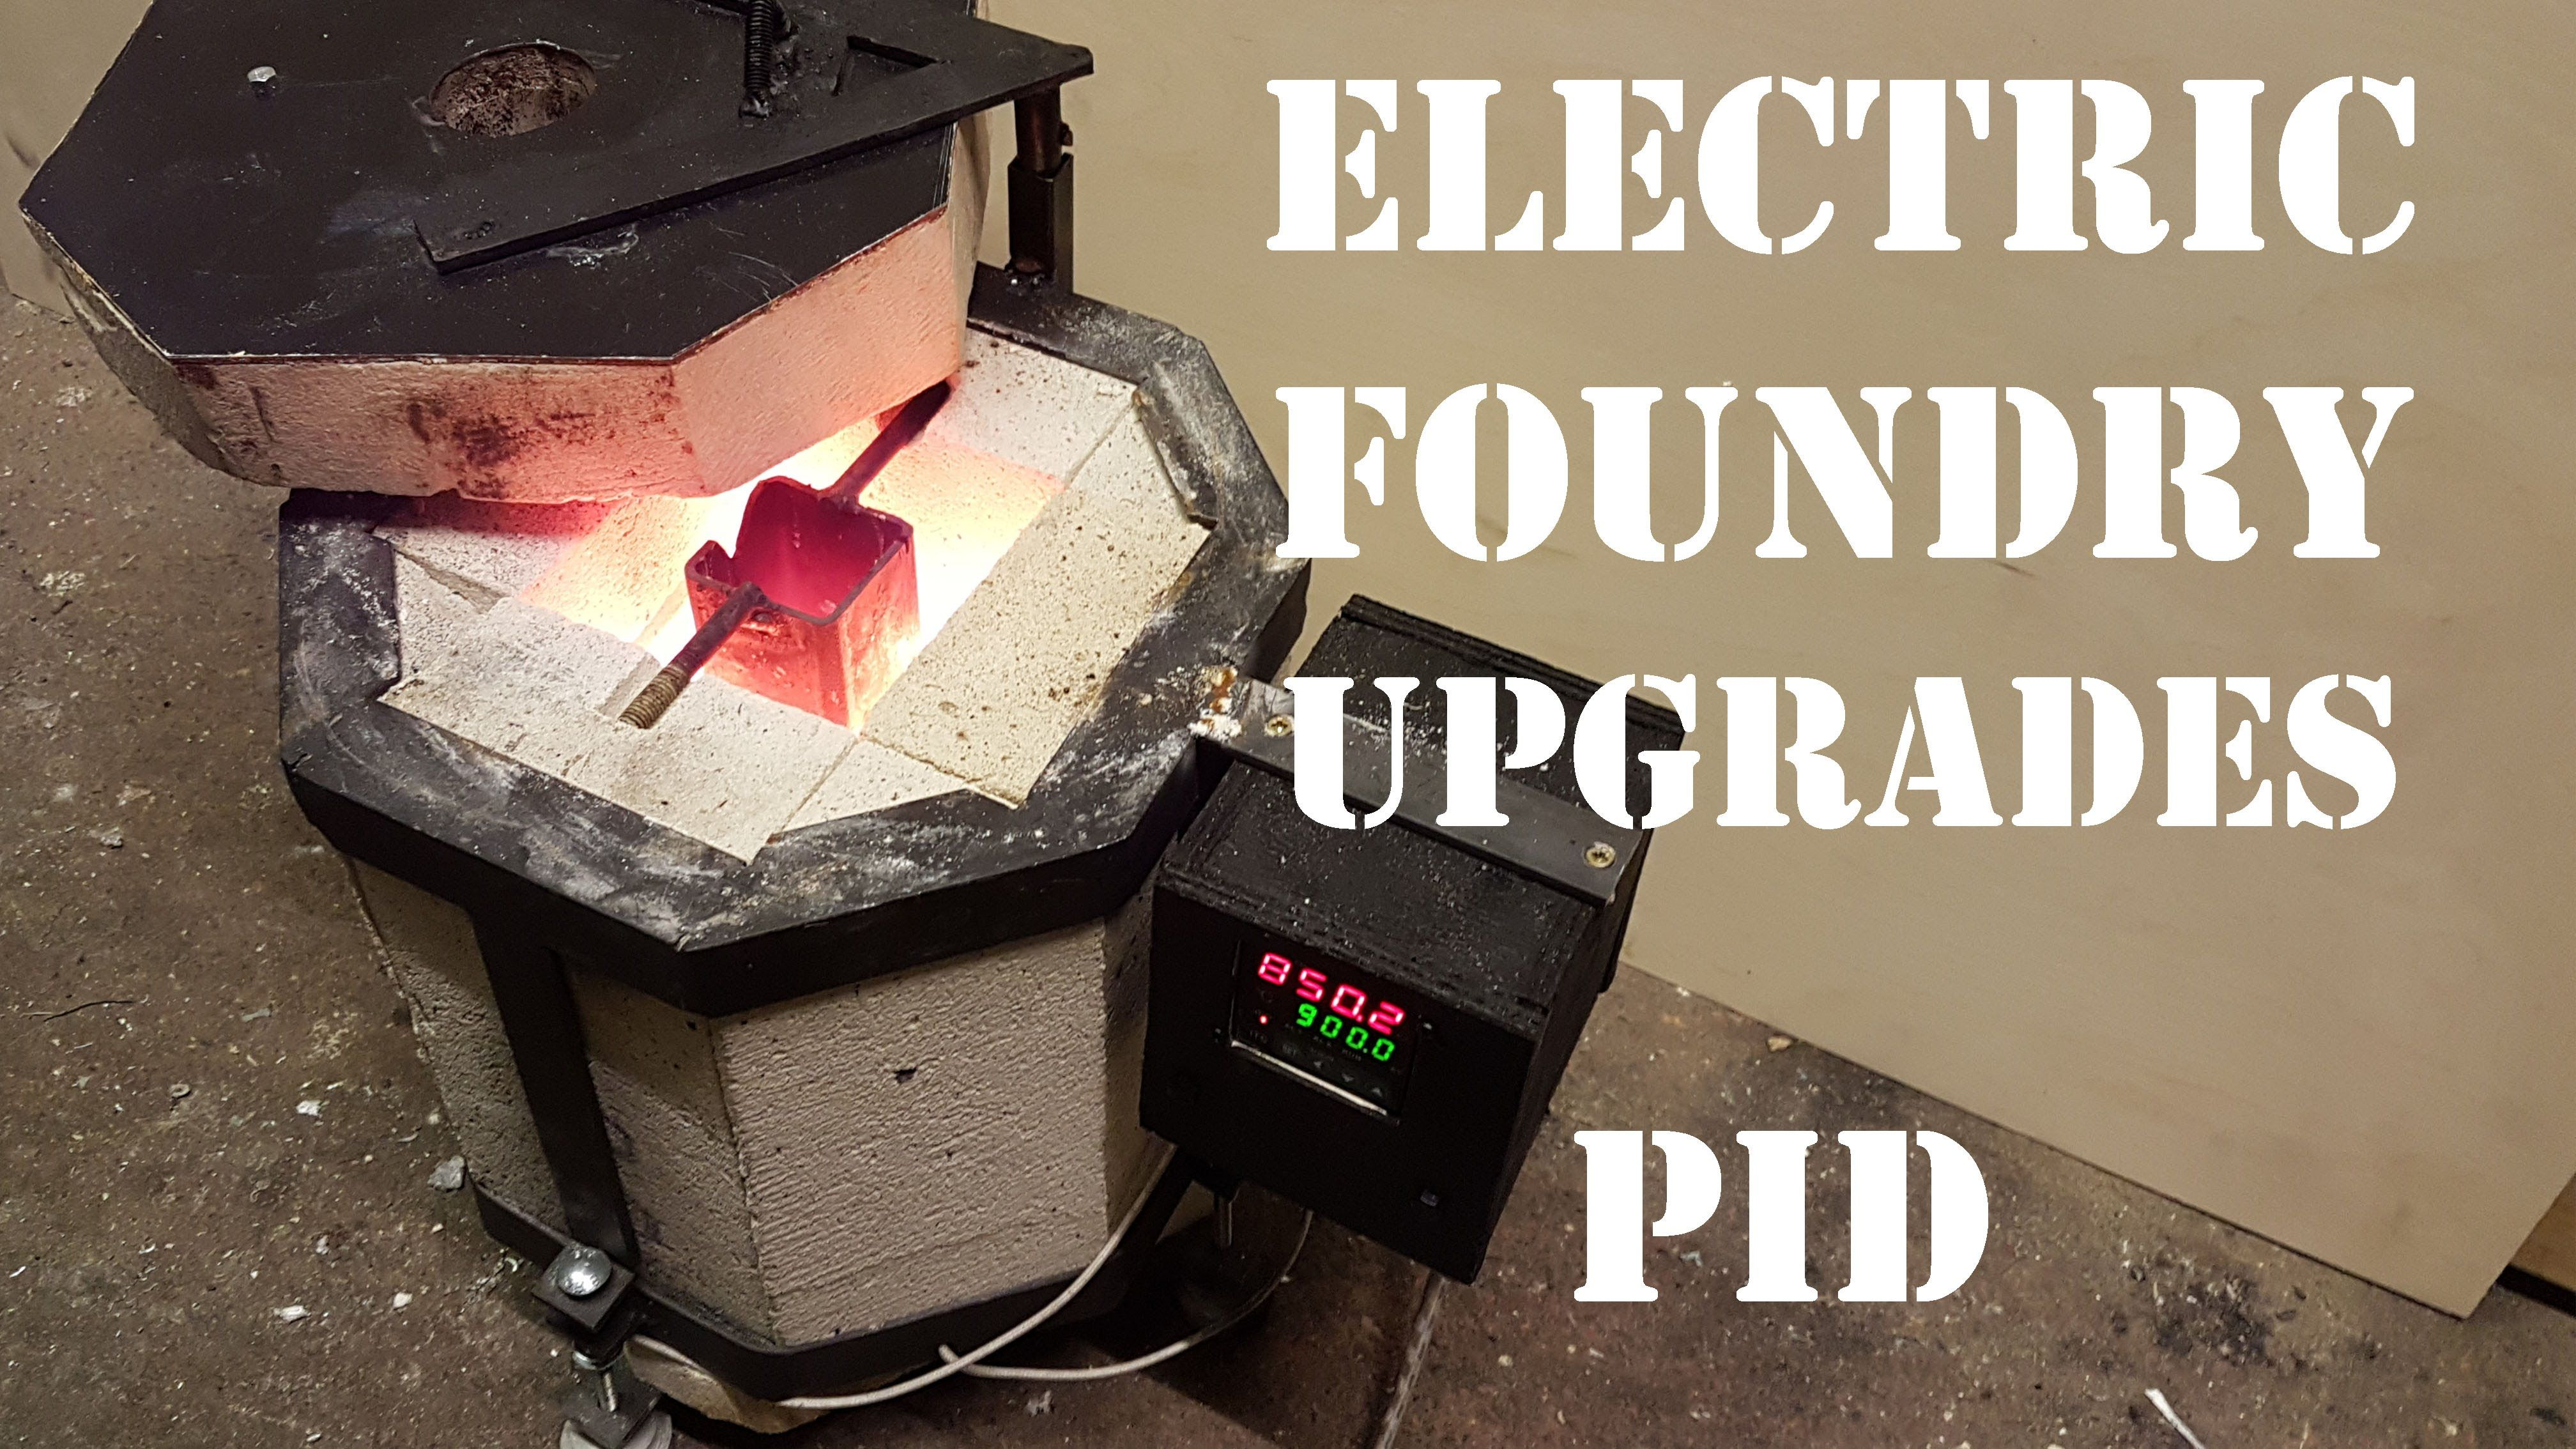 How to Make an Electric Foundry For Metal Casting - Part 2